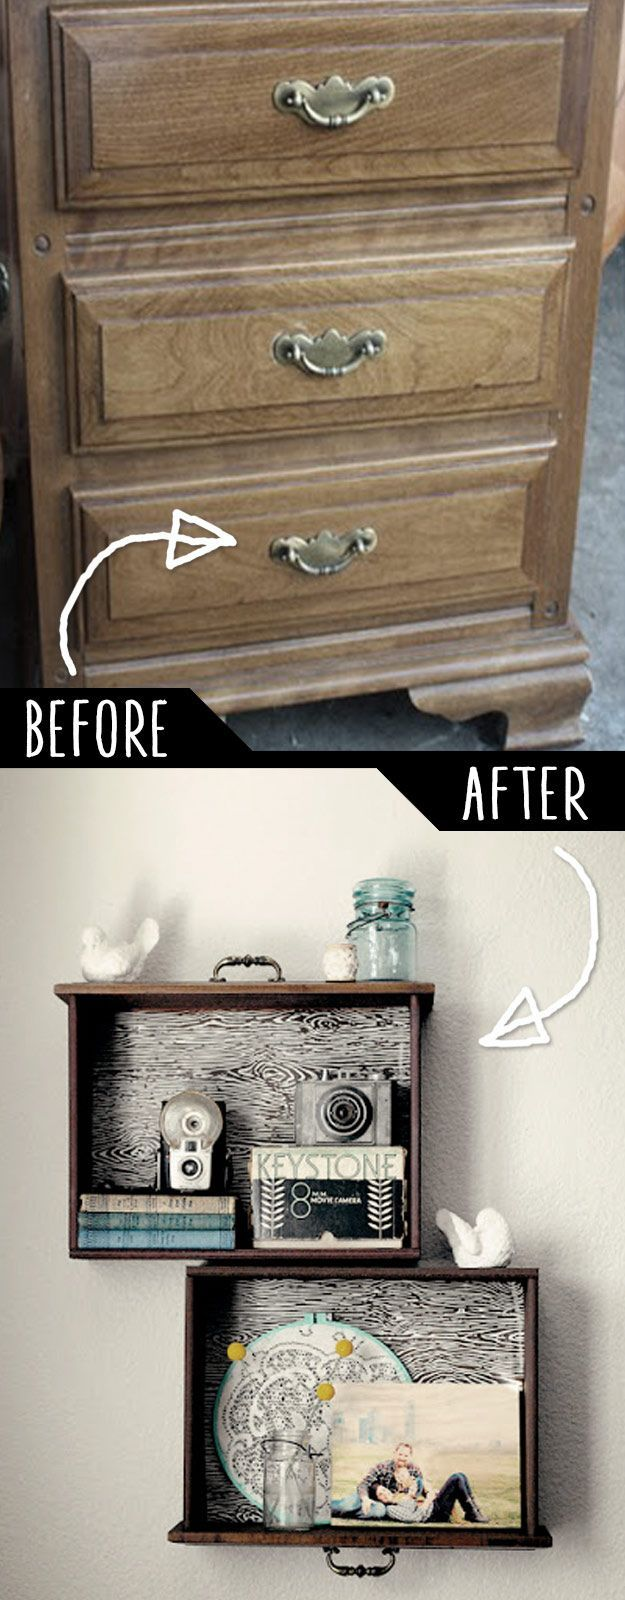 39 Clever DIY Furniture Hacks  Cheap Home DecorHome Decor IdeasCheap Bedroom. Best 25  Diy bedroom decor ideas on Pinterest   Diy bedroom  Diy